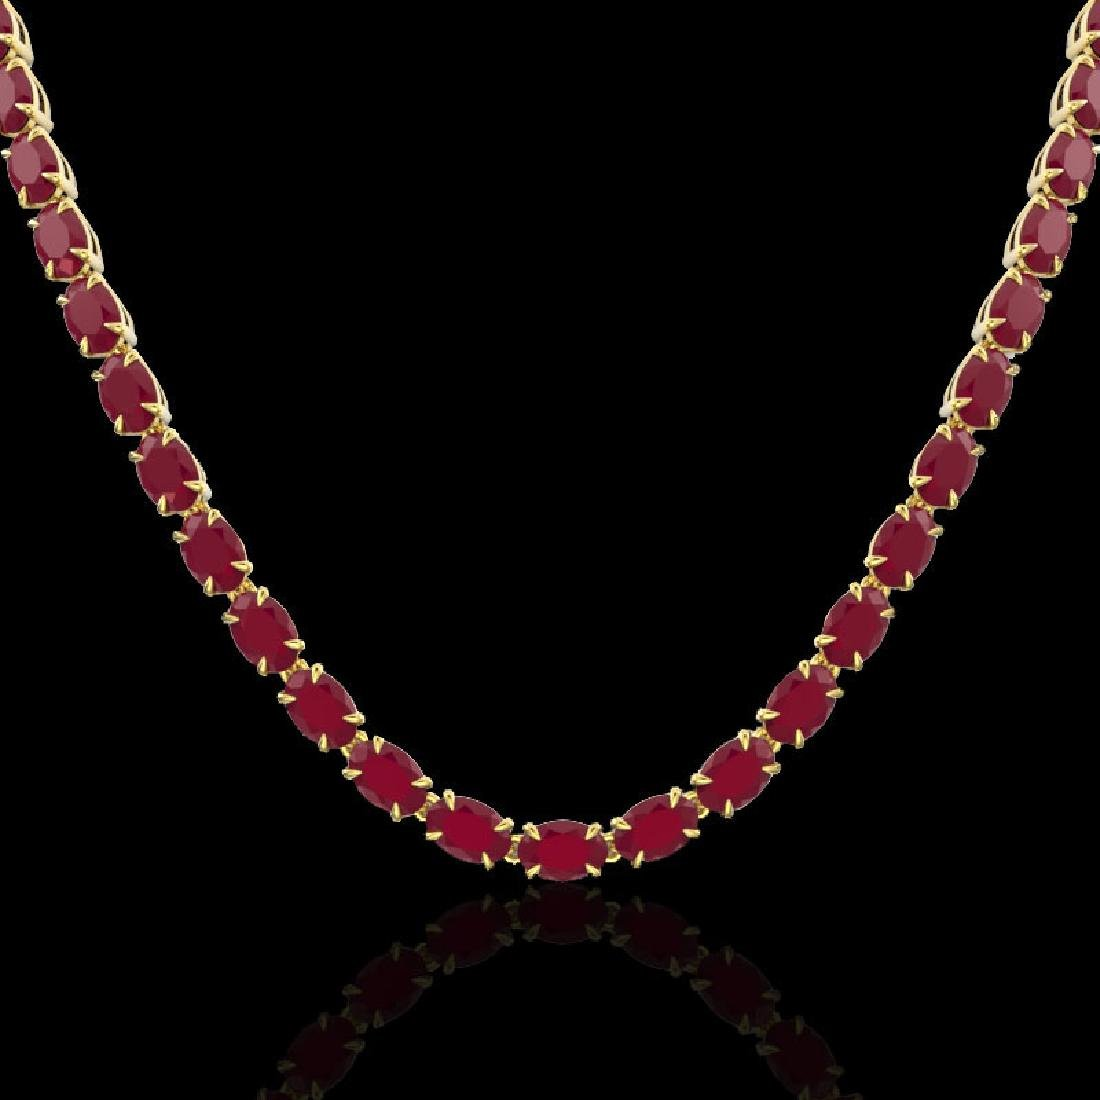 40 CTW Ruby Eternity Tennis Necklace 14K Yellow Gold - 2